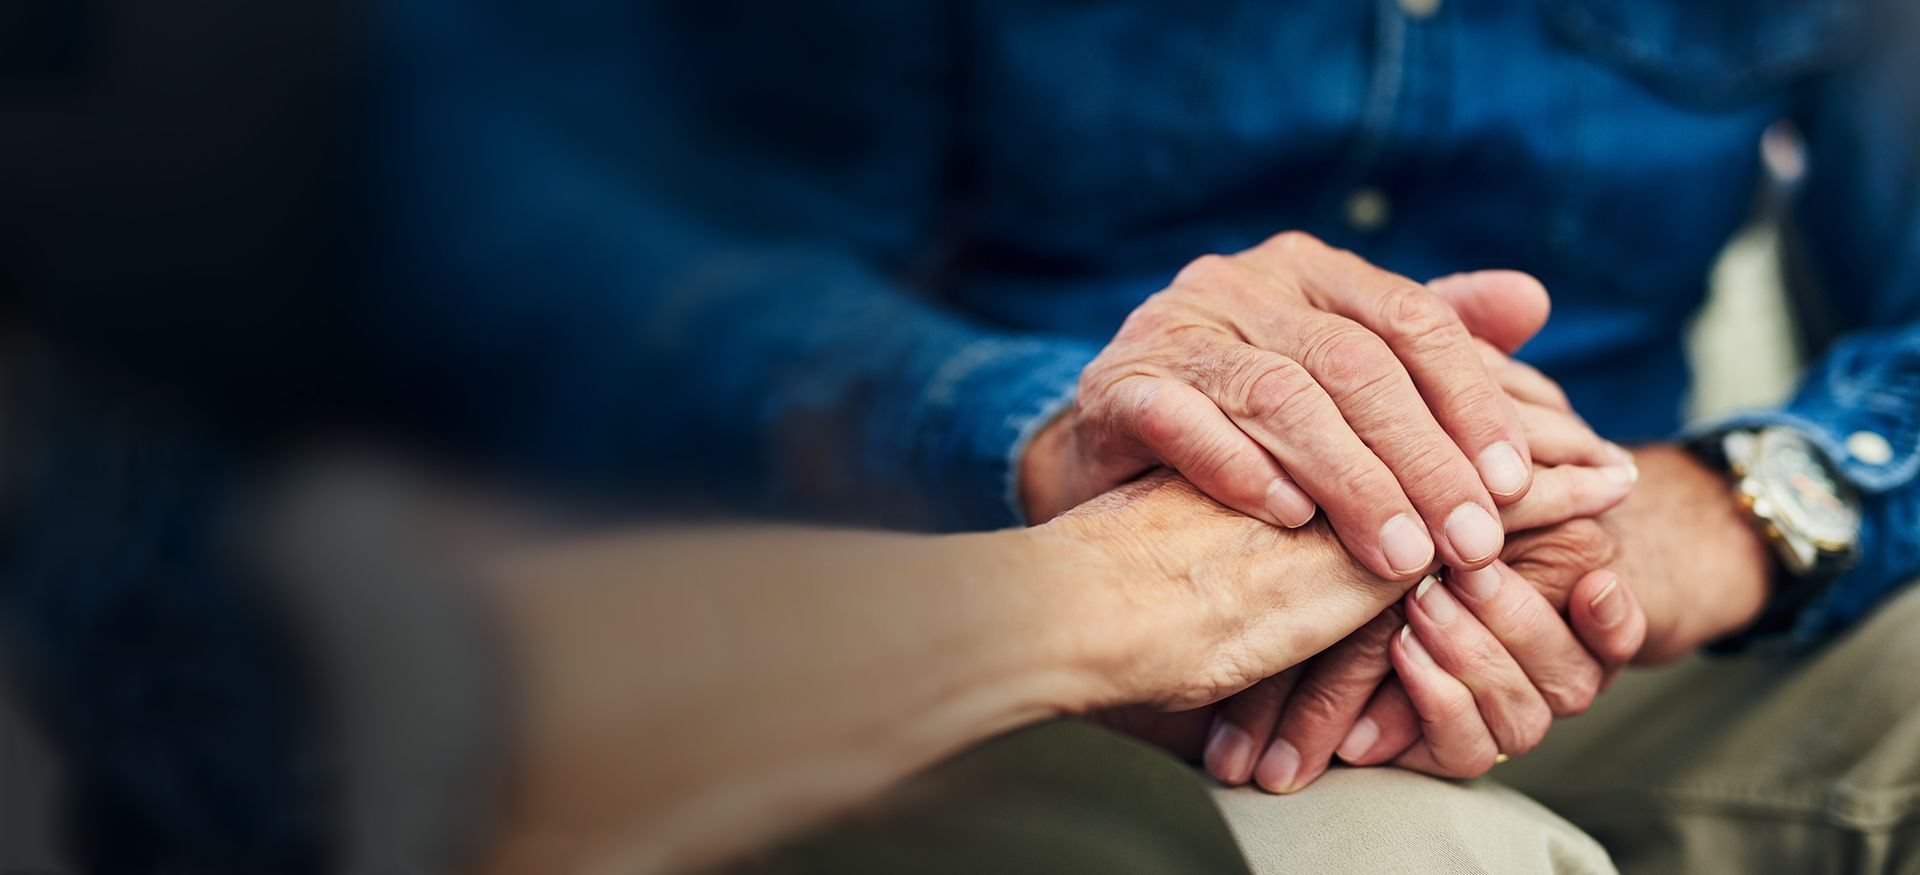 If you need help applying for social security disability